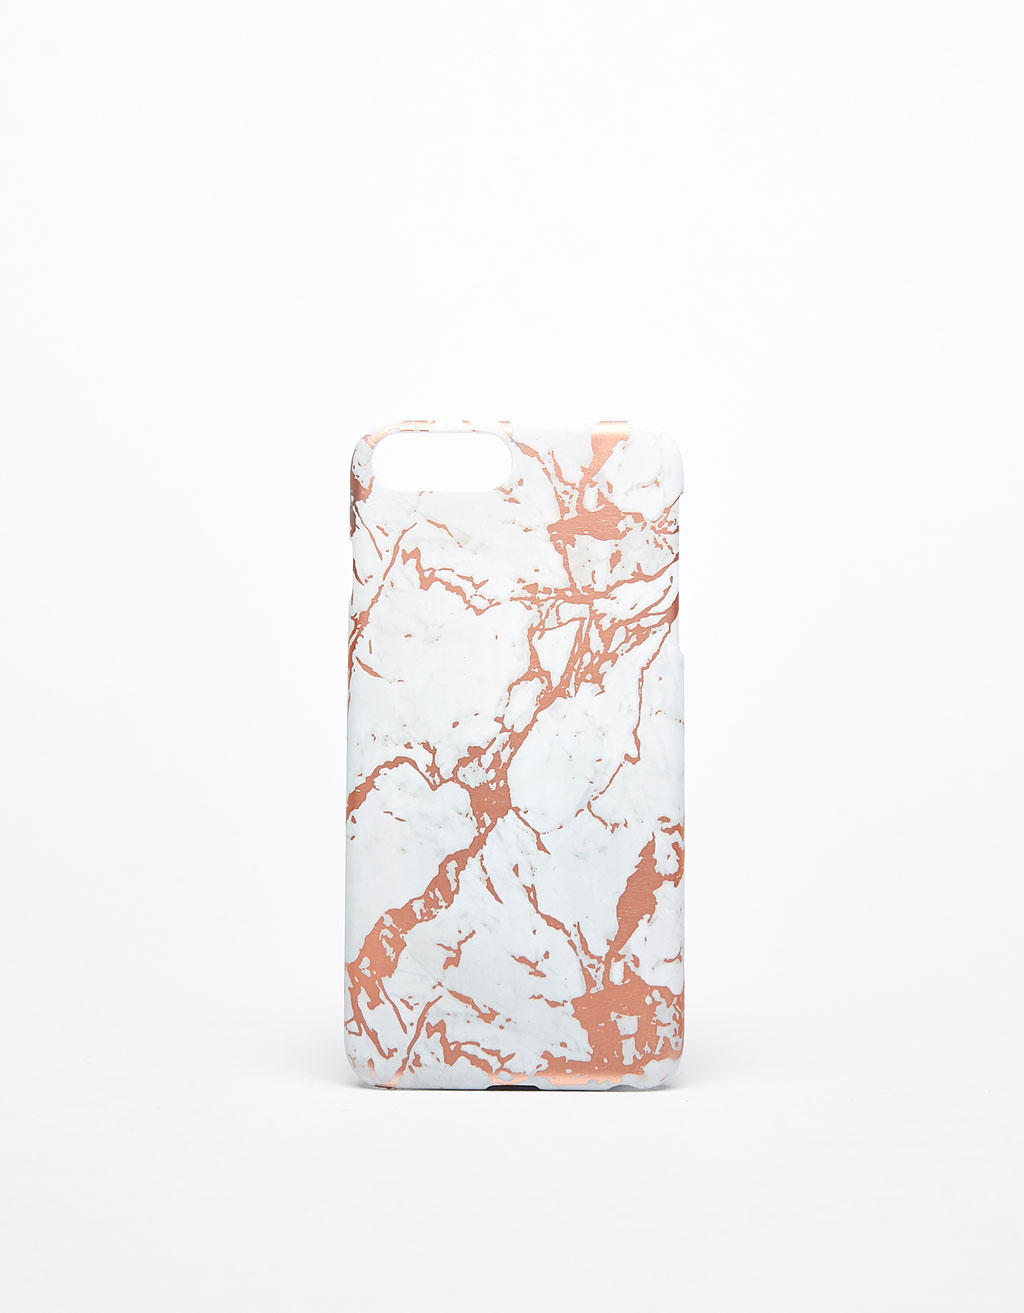 Marble design iPhone 6+/7+ case